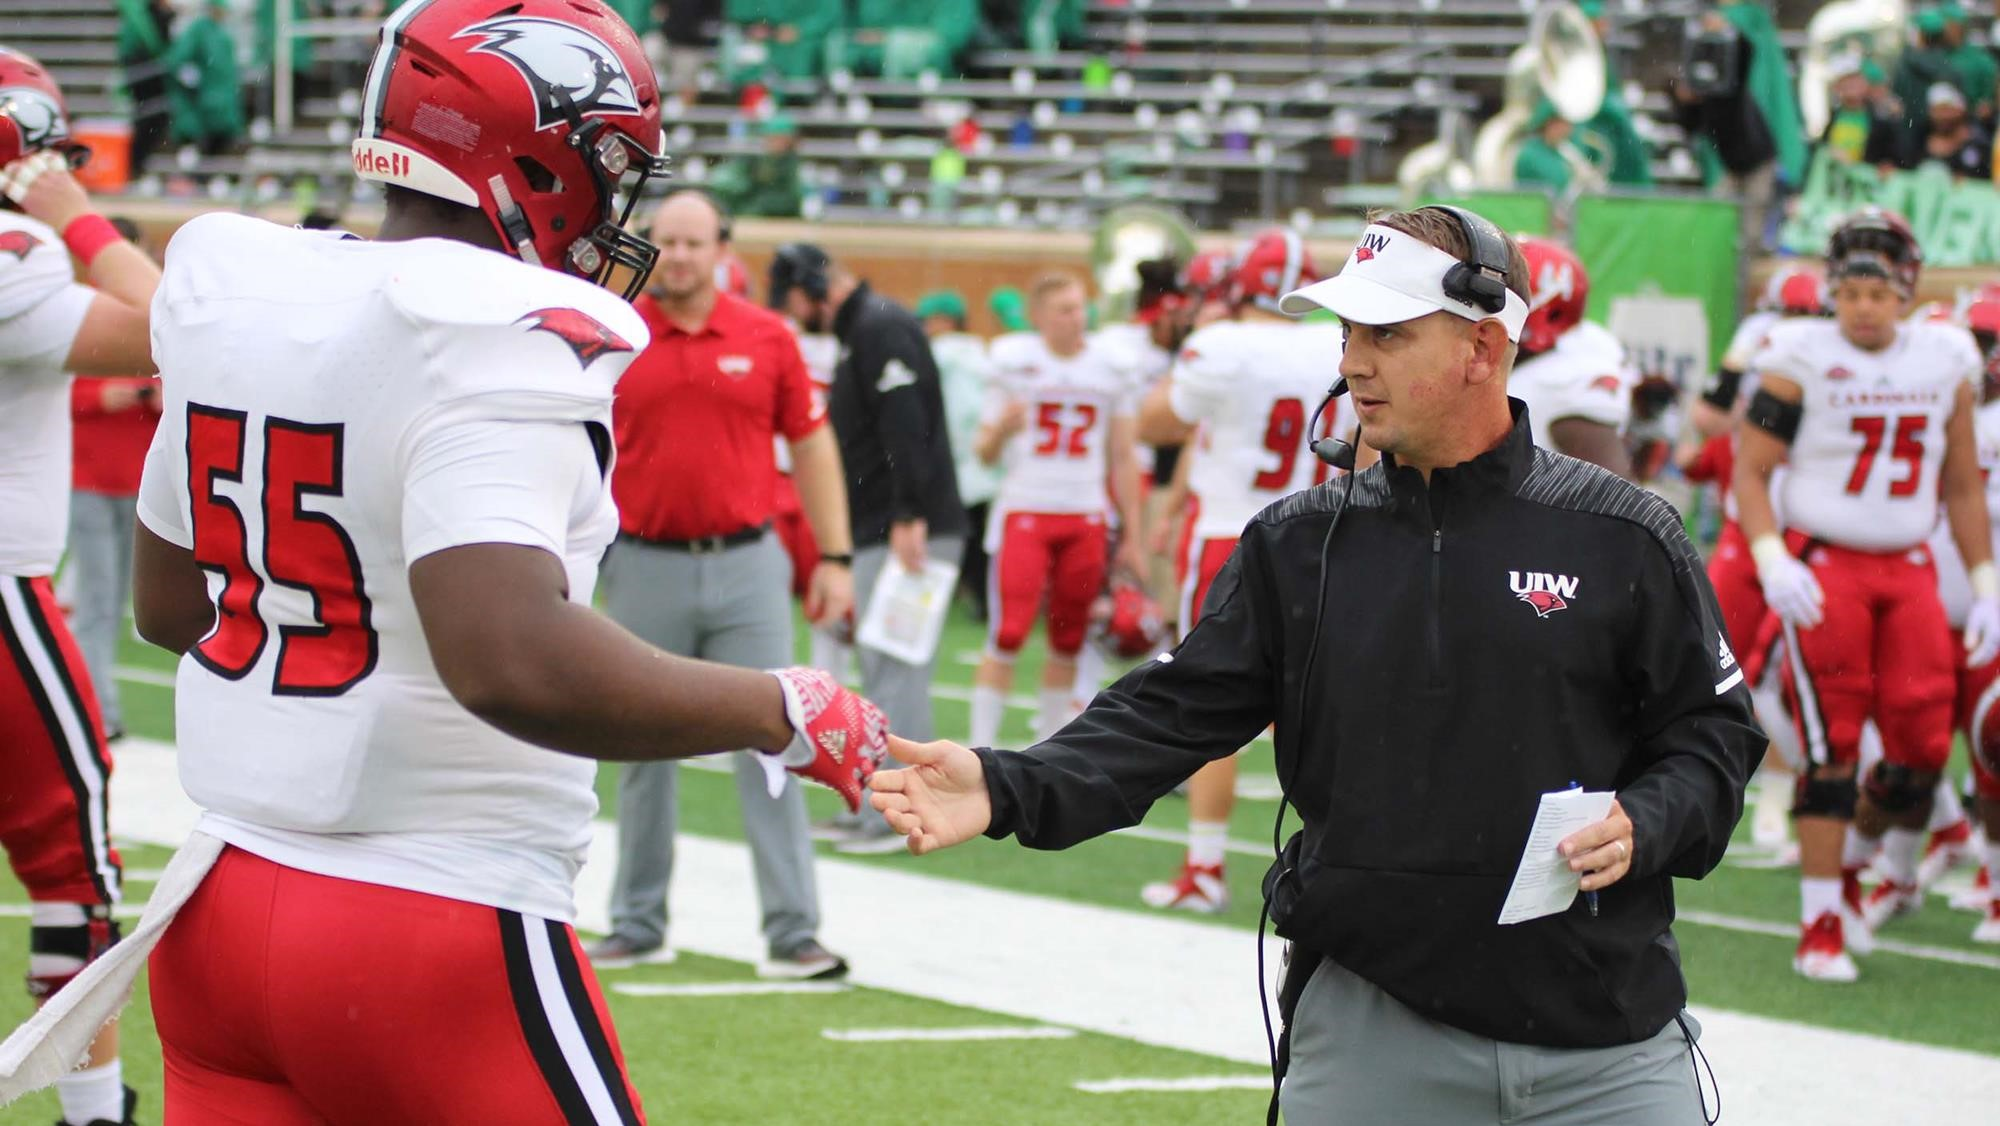 Incarnate Word Makes Playoff Debut Against Bobcats In